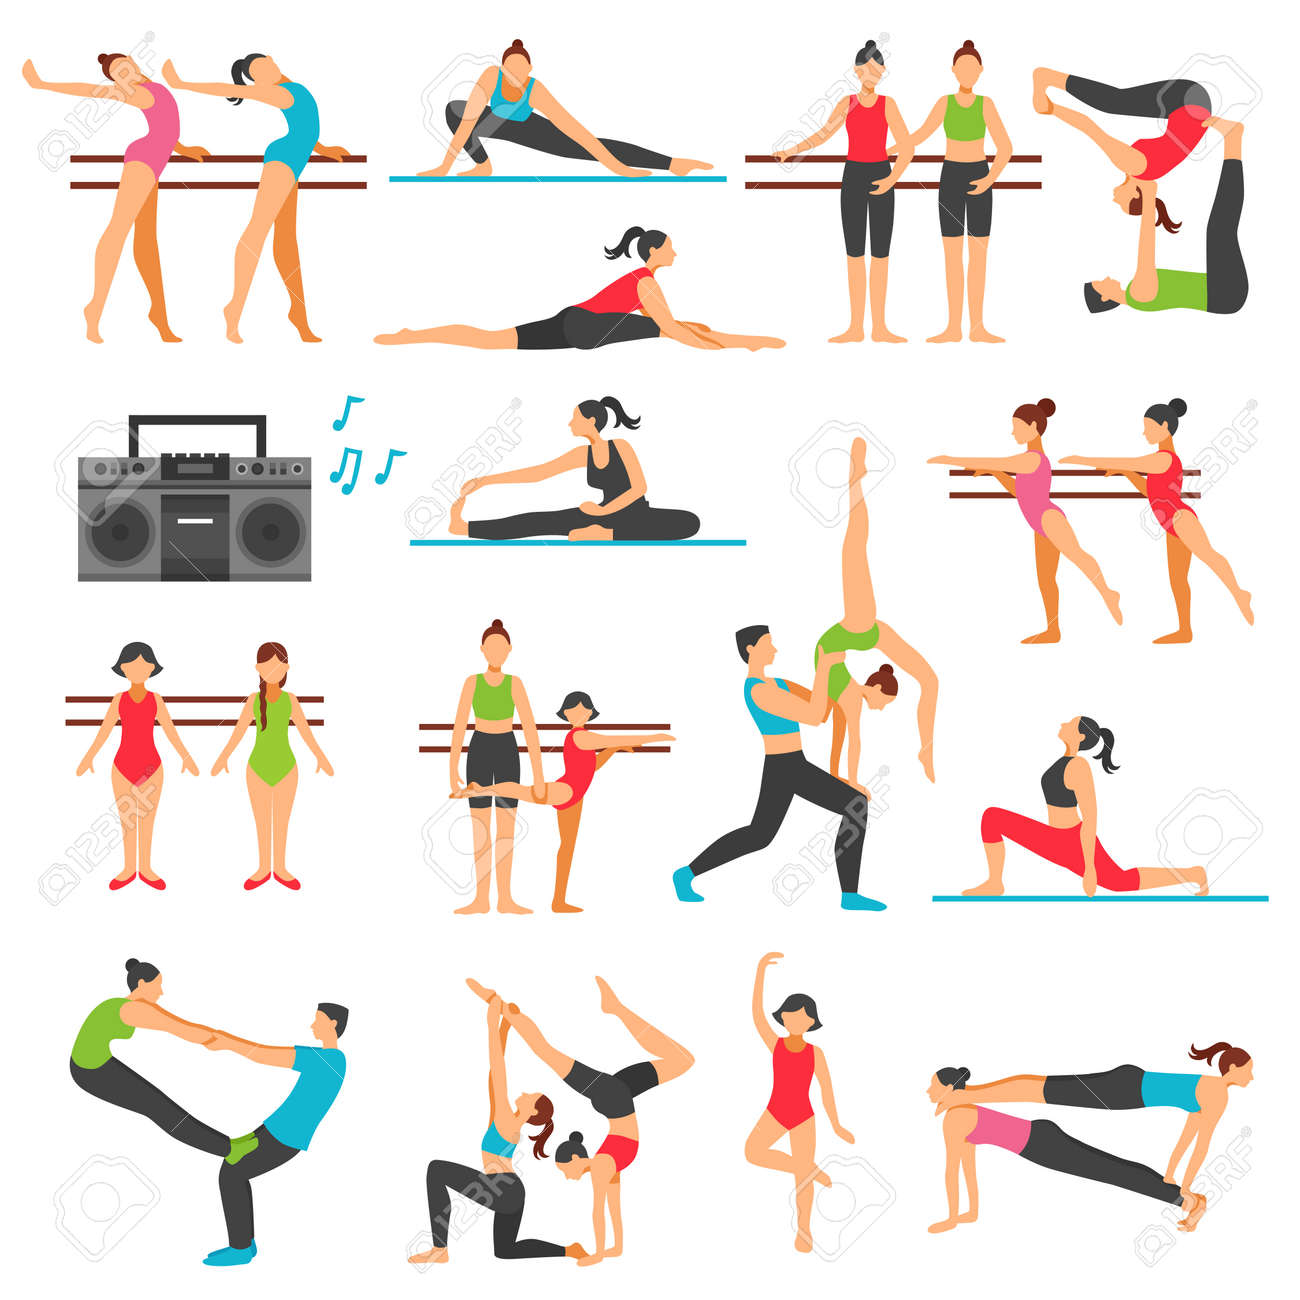 Dance training decorative icons set with girls in various poses stretching acrobatics music system isolated vector illustration - 165634423